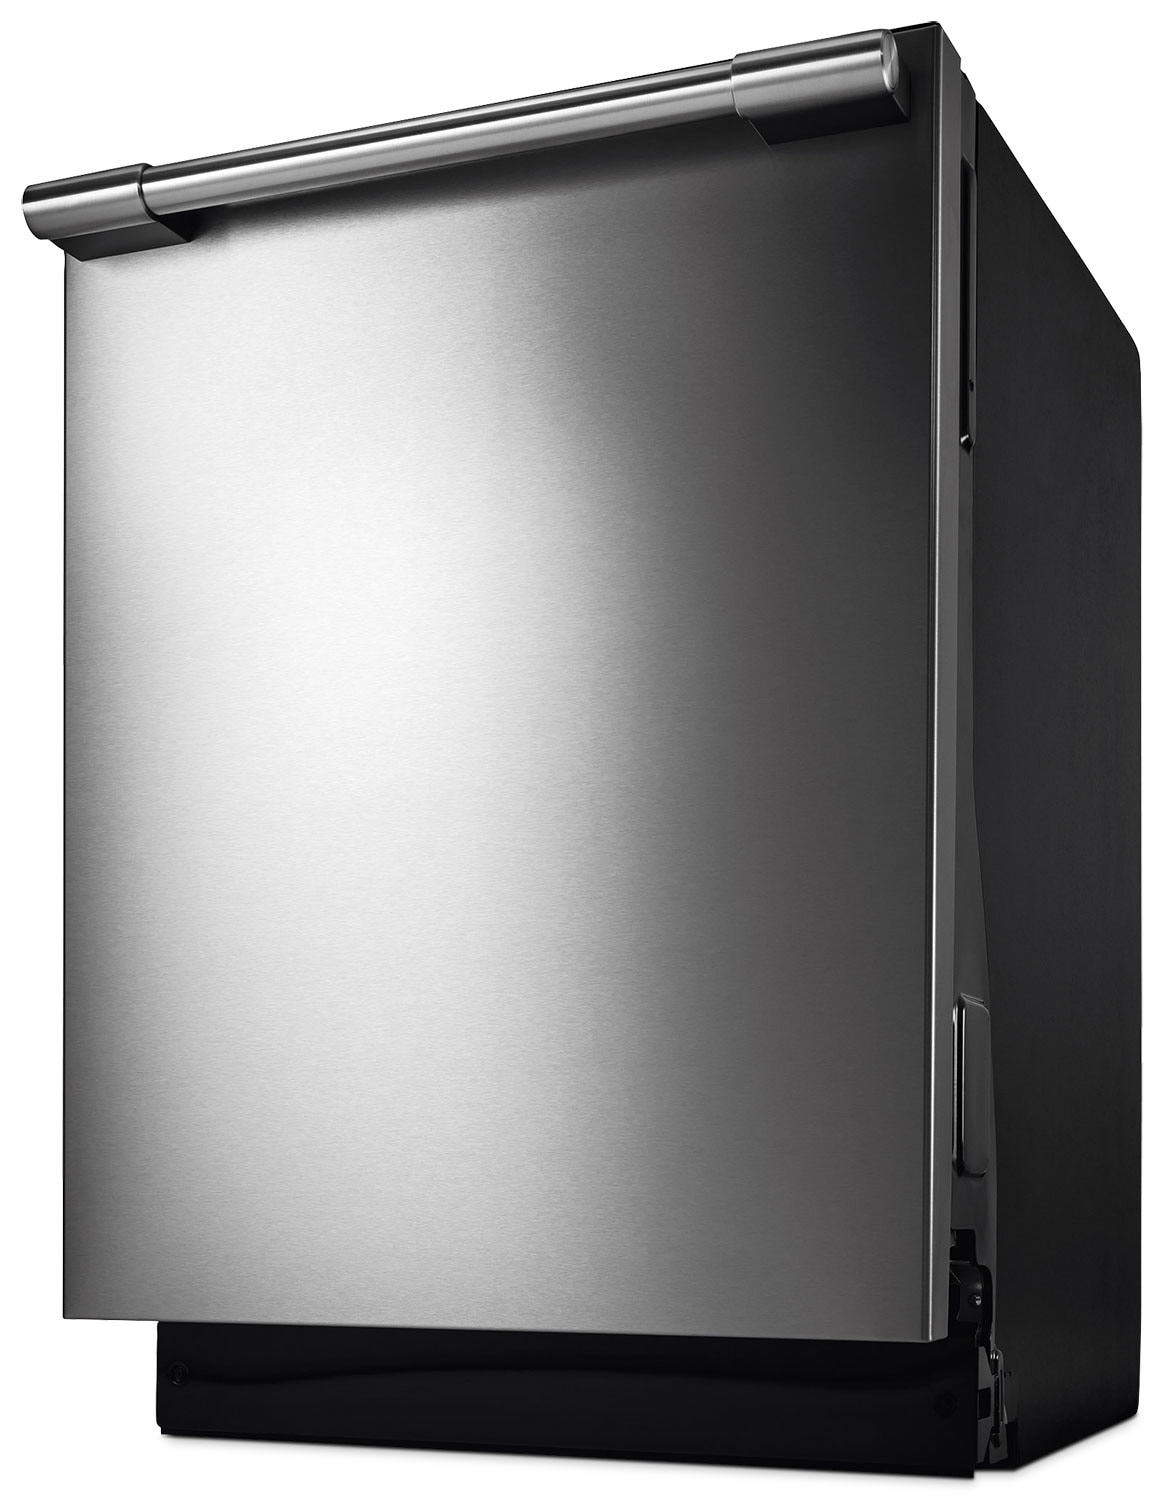 "Frigidaire Professional Stainless Steel 24"" Dishwasher - FPID2497RF"